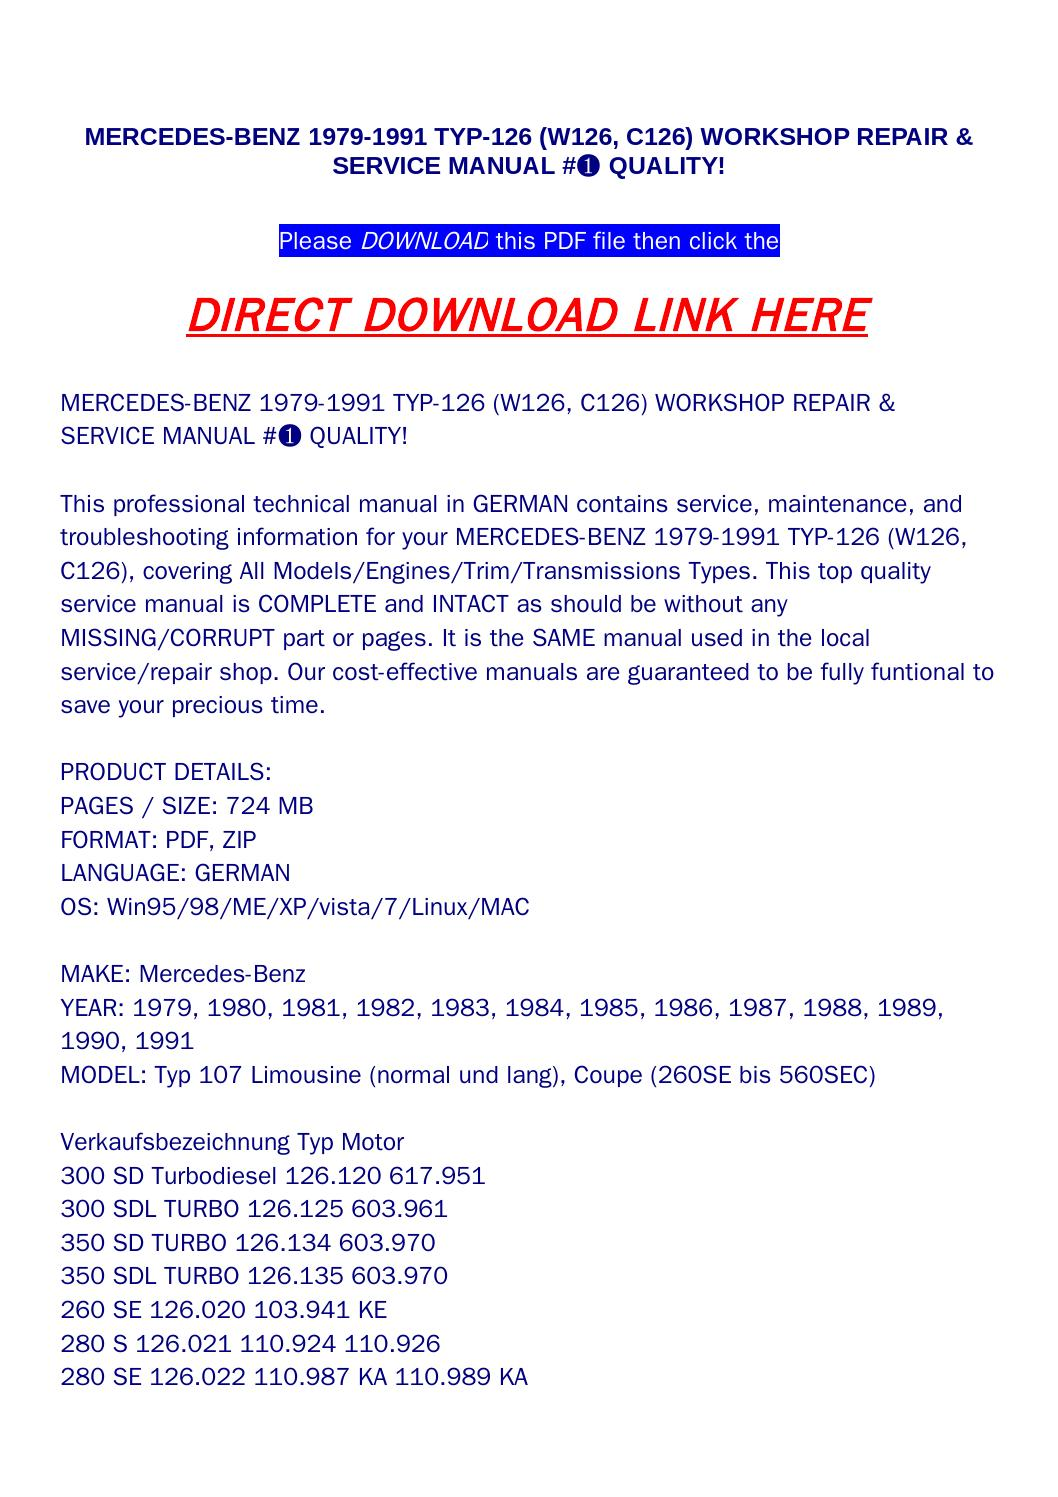 hight resolution of mercedes benz 1979 1991 typ 126 w126 c126 workshop repair service manual quality